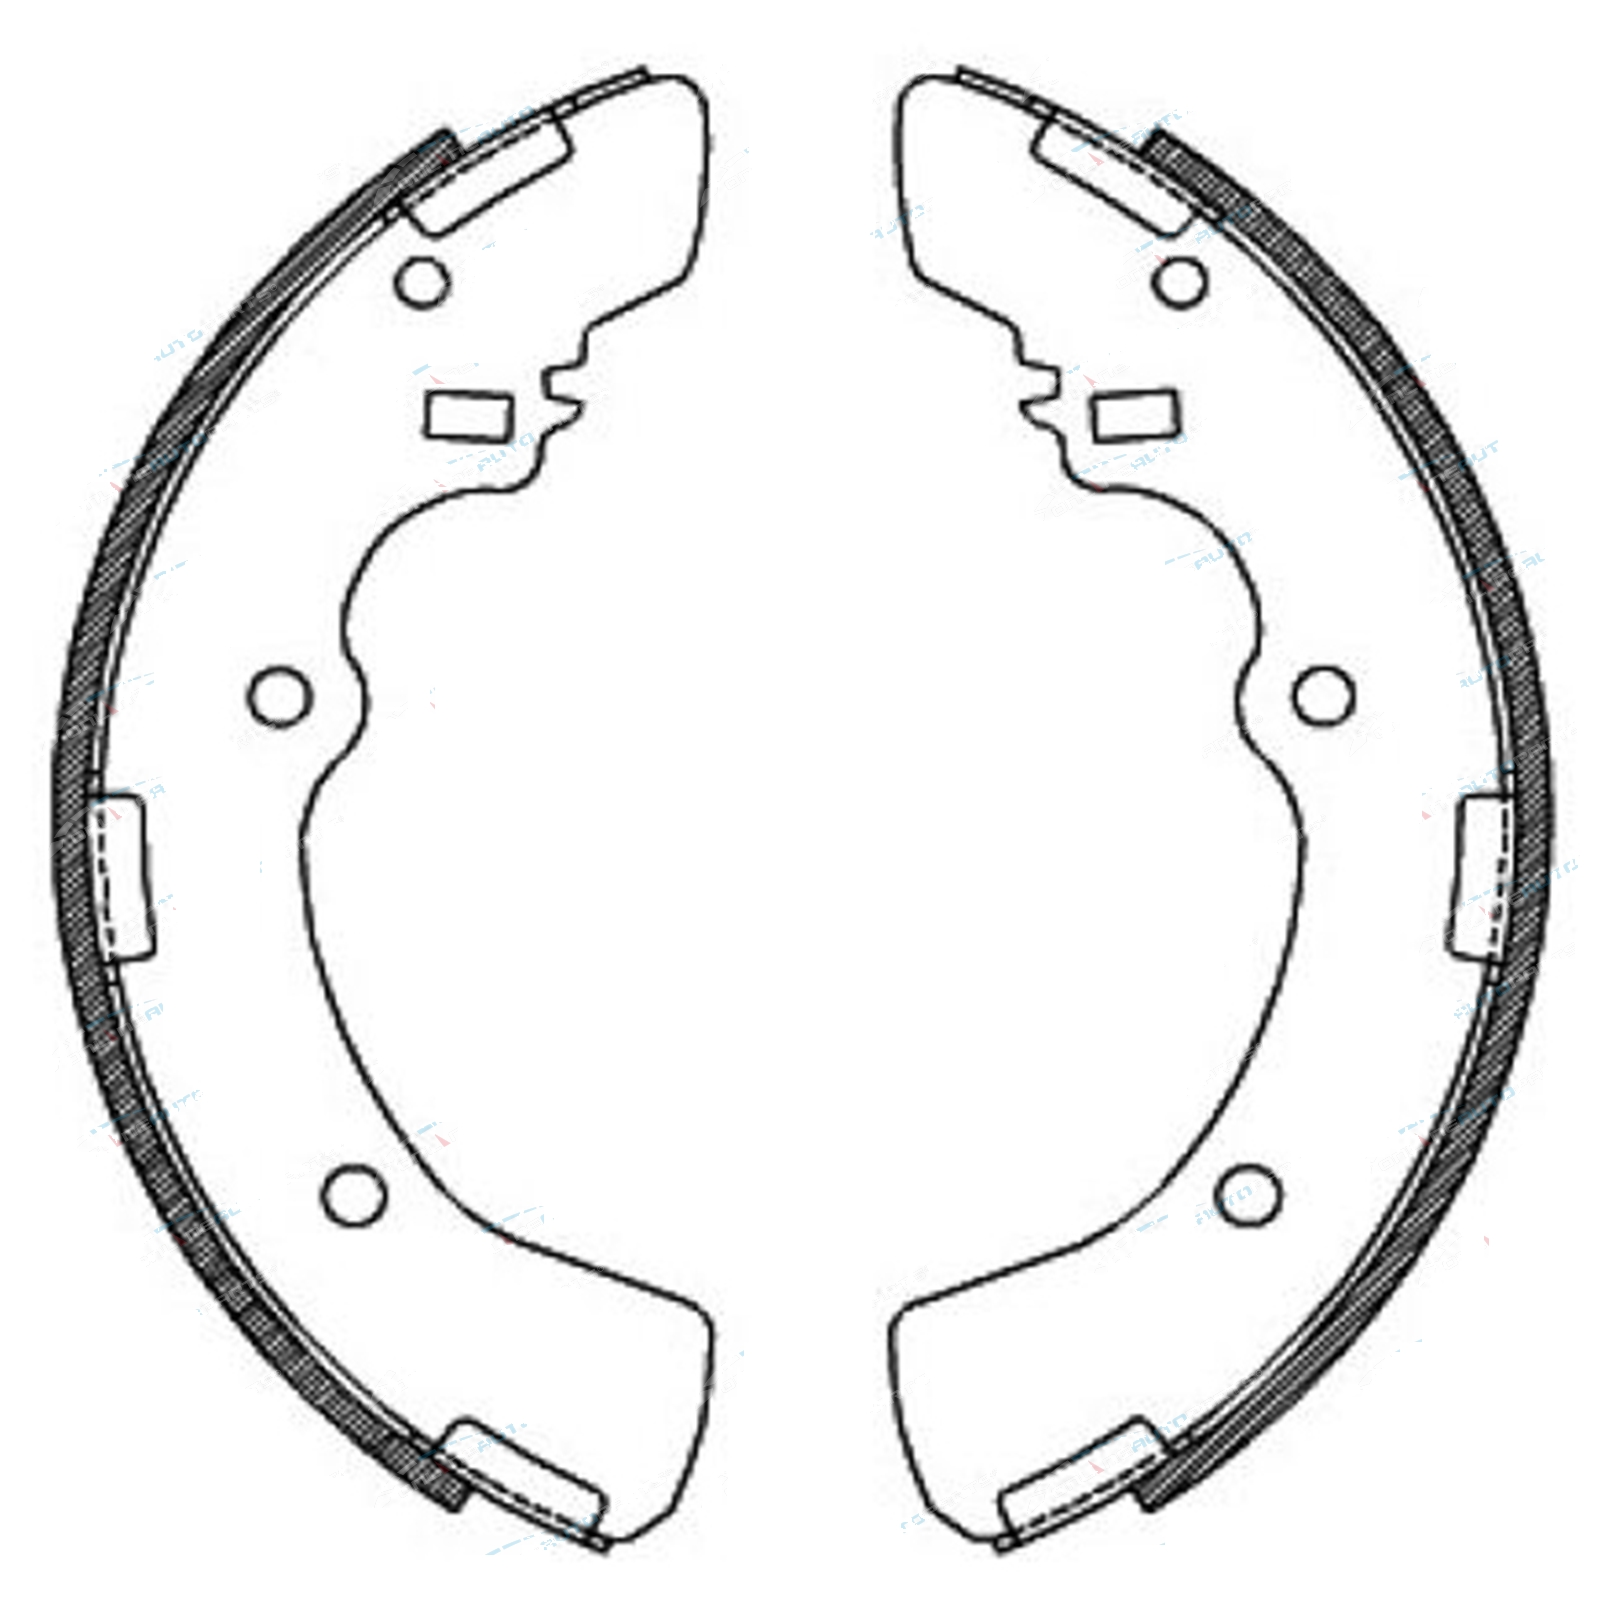 Brake Shoes L300 Starwagon Delica 4x4 SF SG SH SJ Mitsubishi Van 86-95 Drum Set